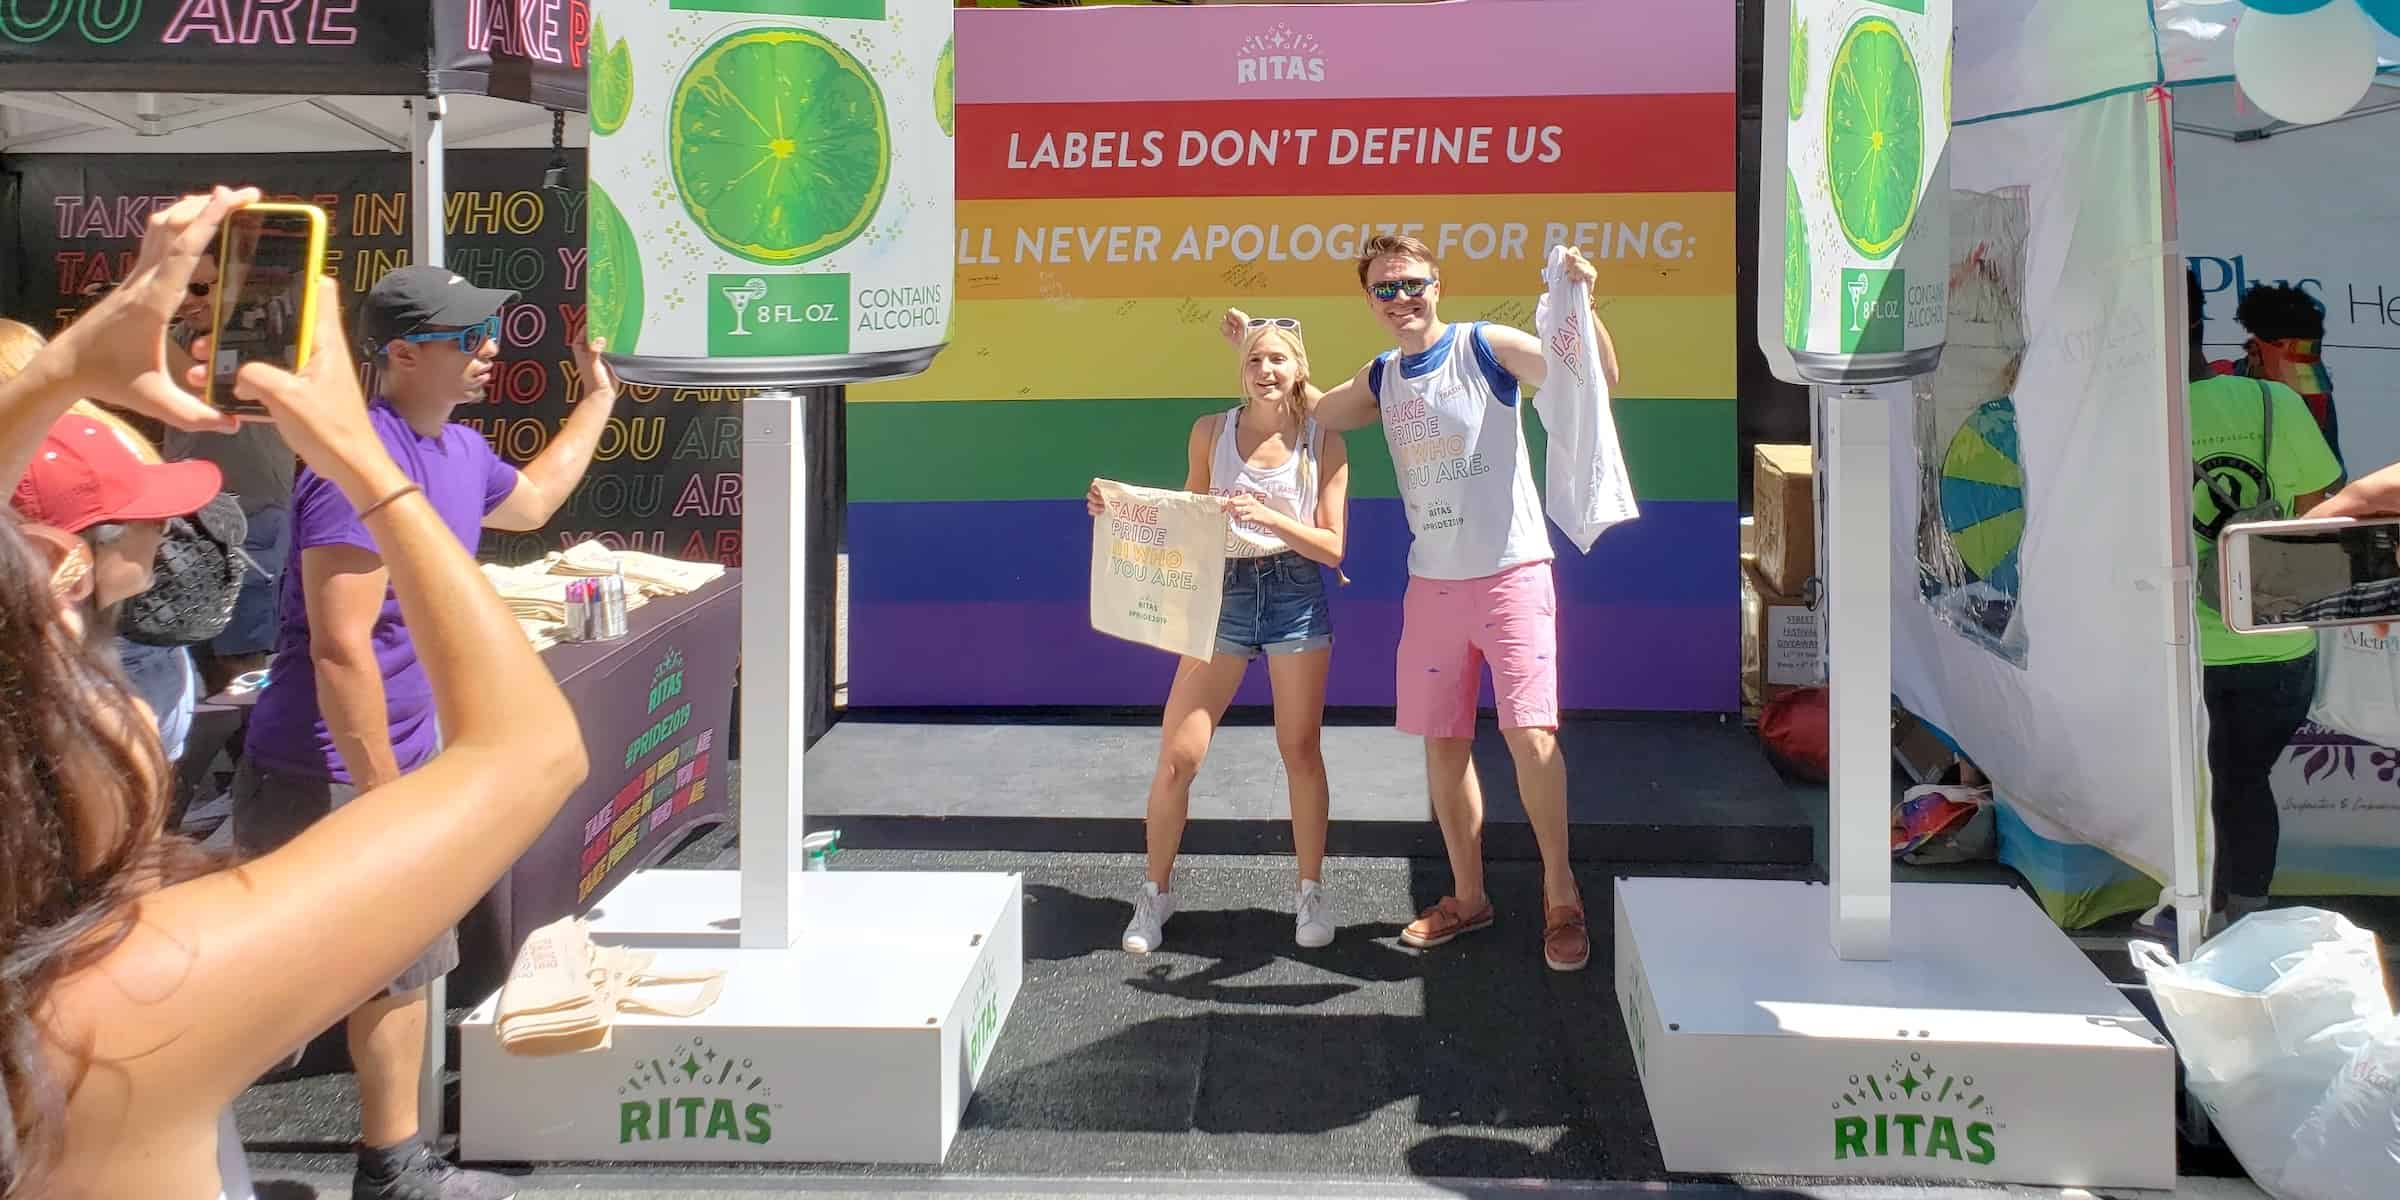 Ritas Alcohol Drink NYC Pride Festival Booth Marketing Experiential Activation - New York City